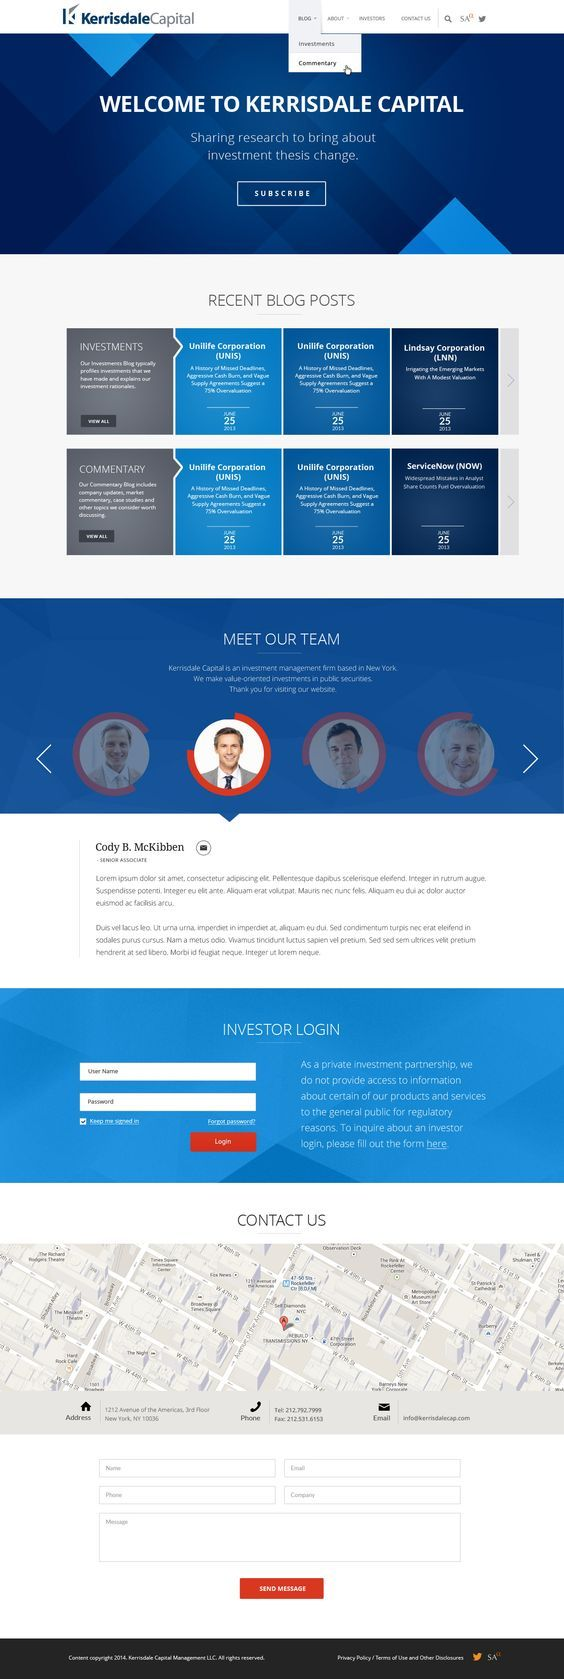 Design Sleek Website for Financial Investment Research Company Website design #90 by Vladan Zlatic: